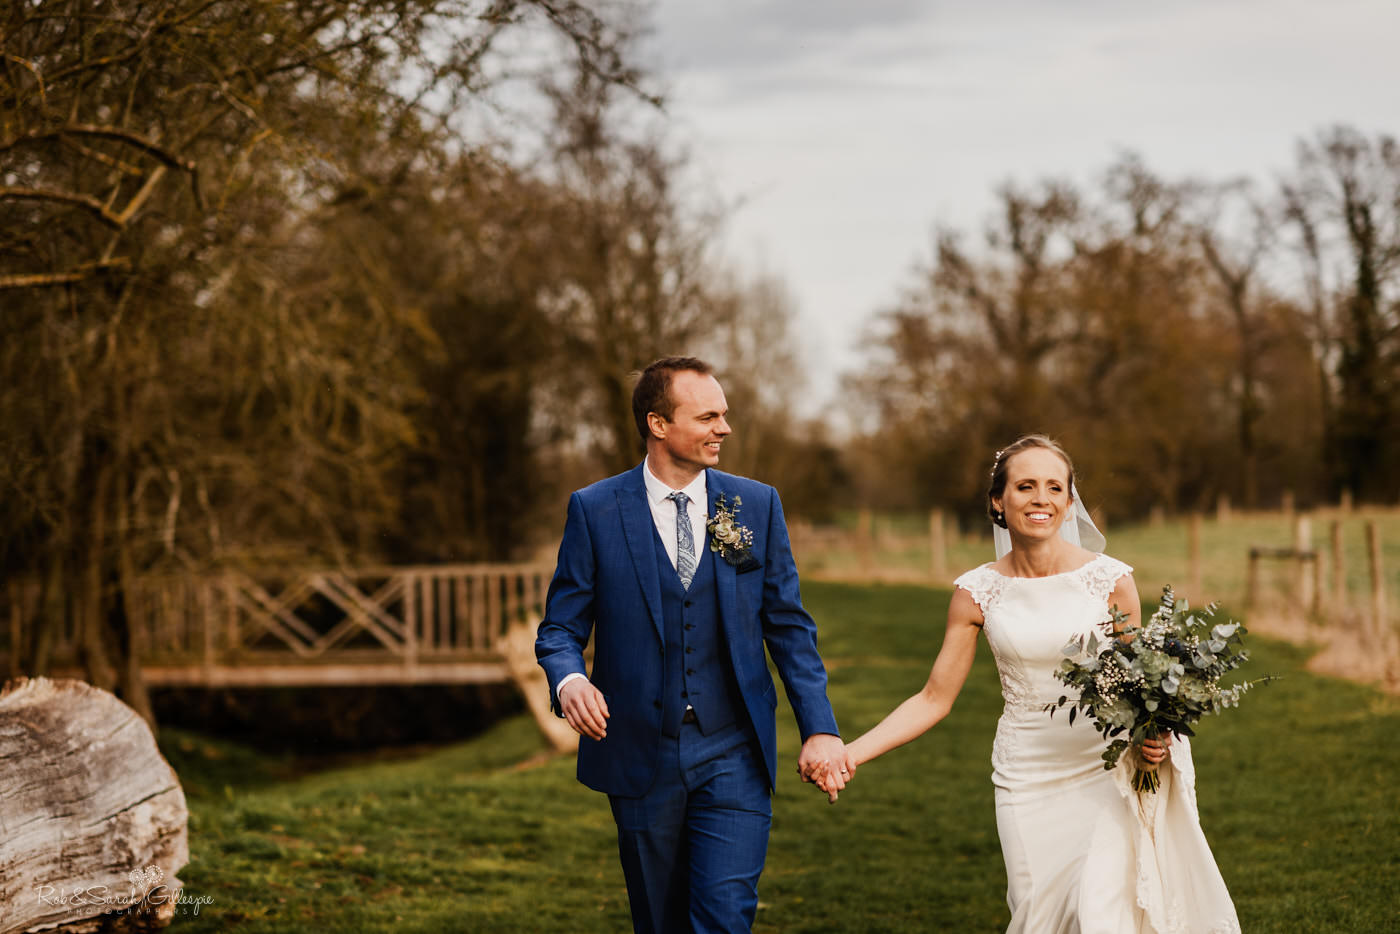 Newly-married couple at Swallows Nest Barn in Warwickshire